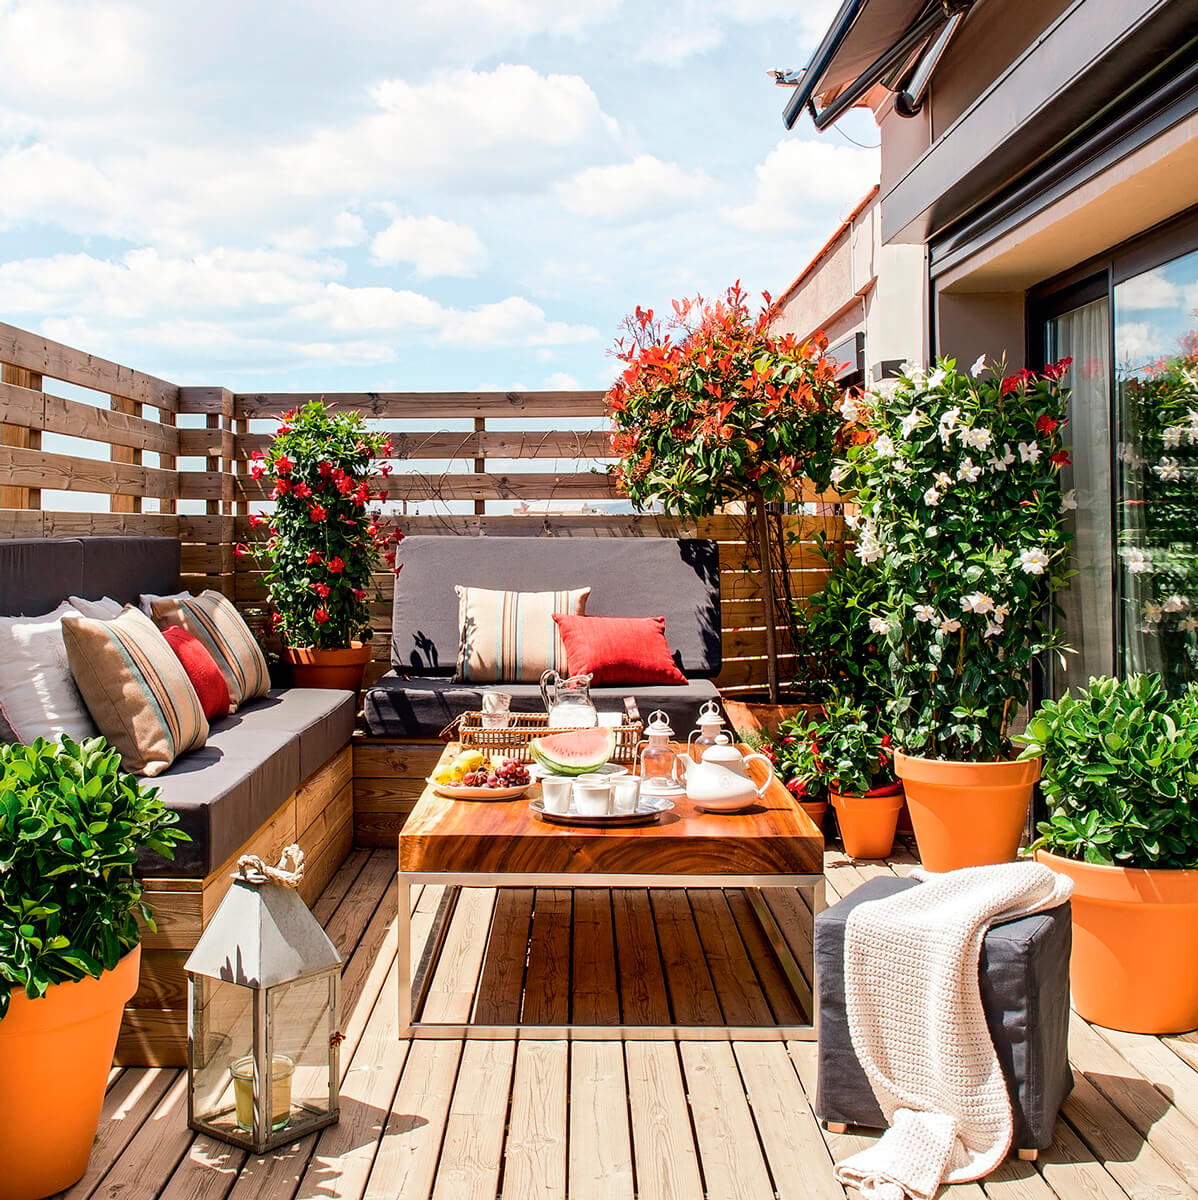 10 ideas para decorar terrazas y balcones handfie diy for Jardines en balcones pequenos